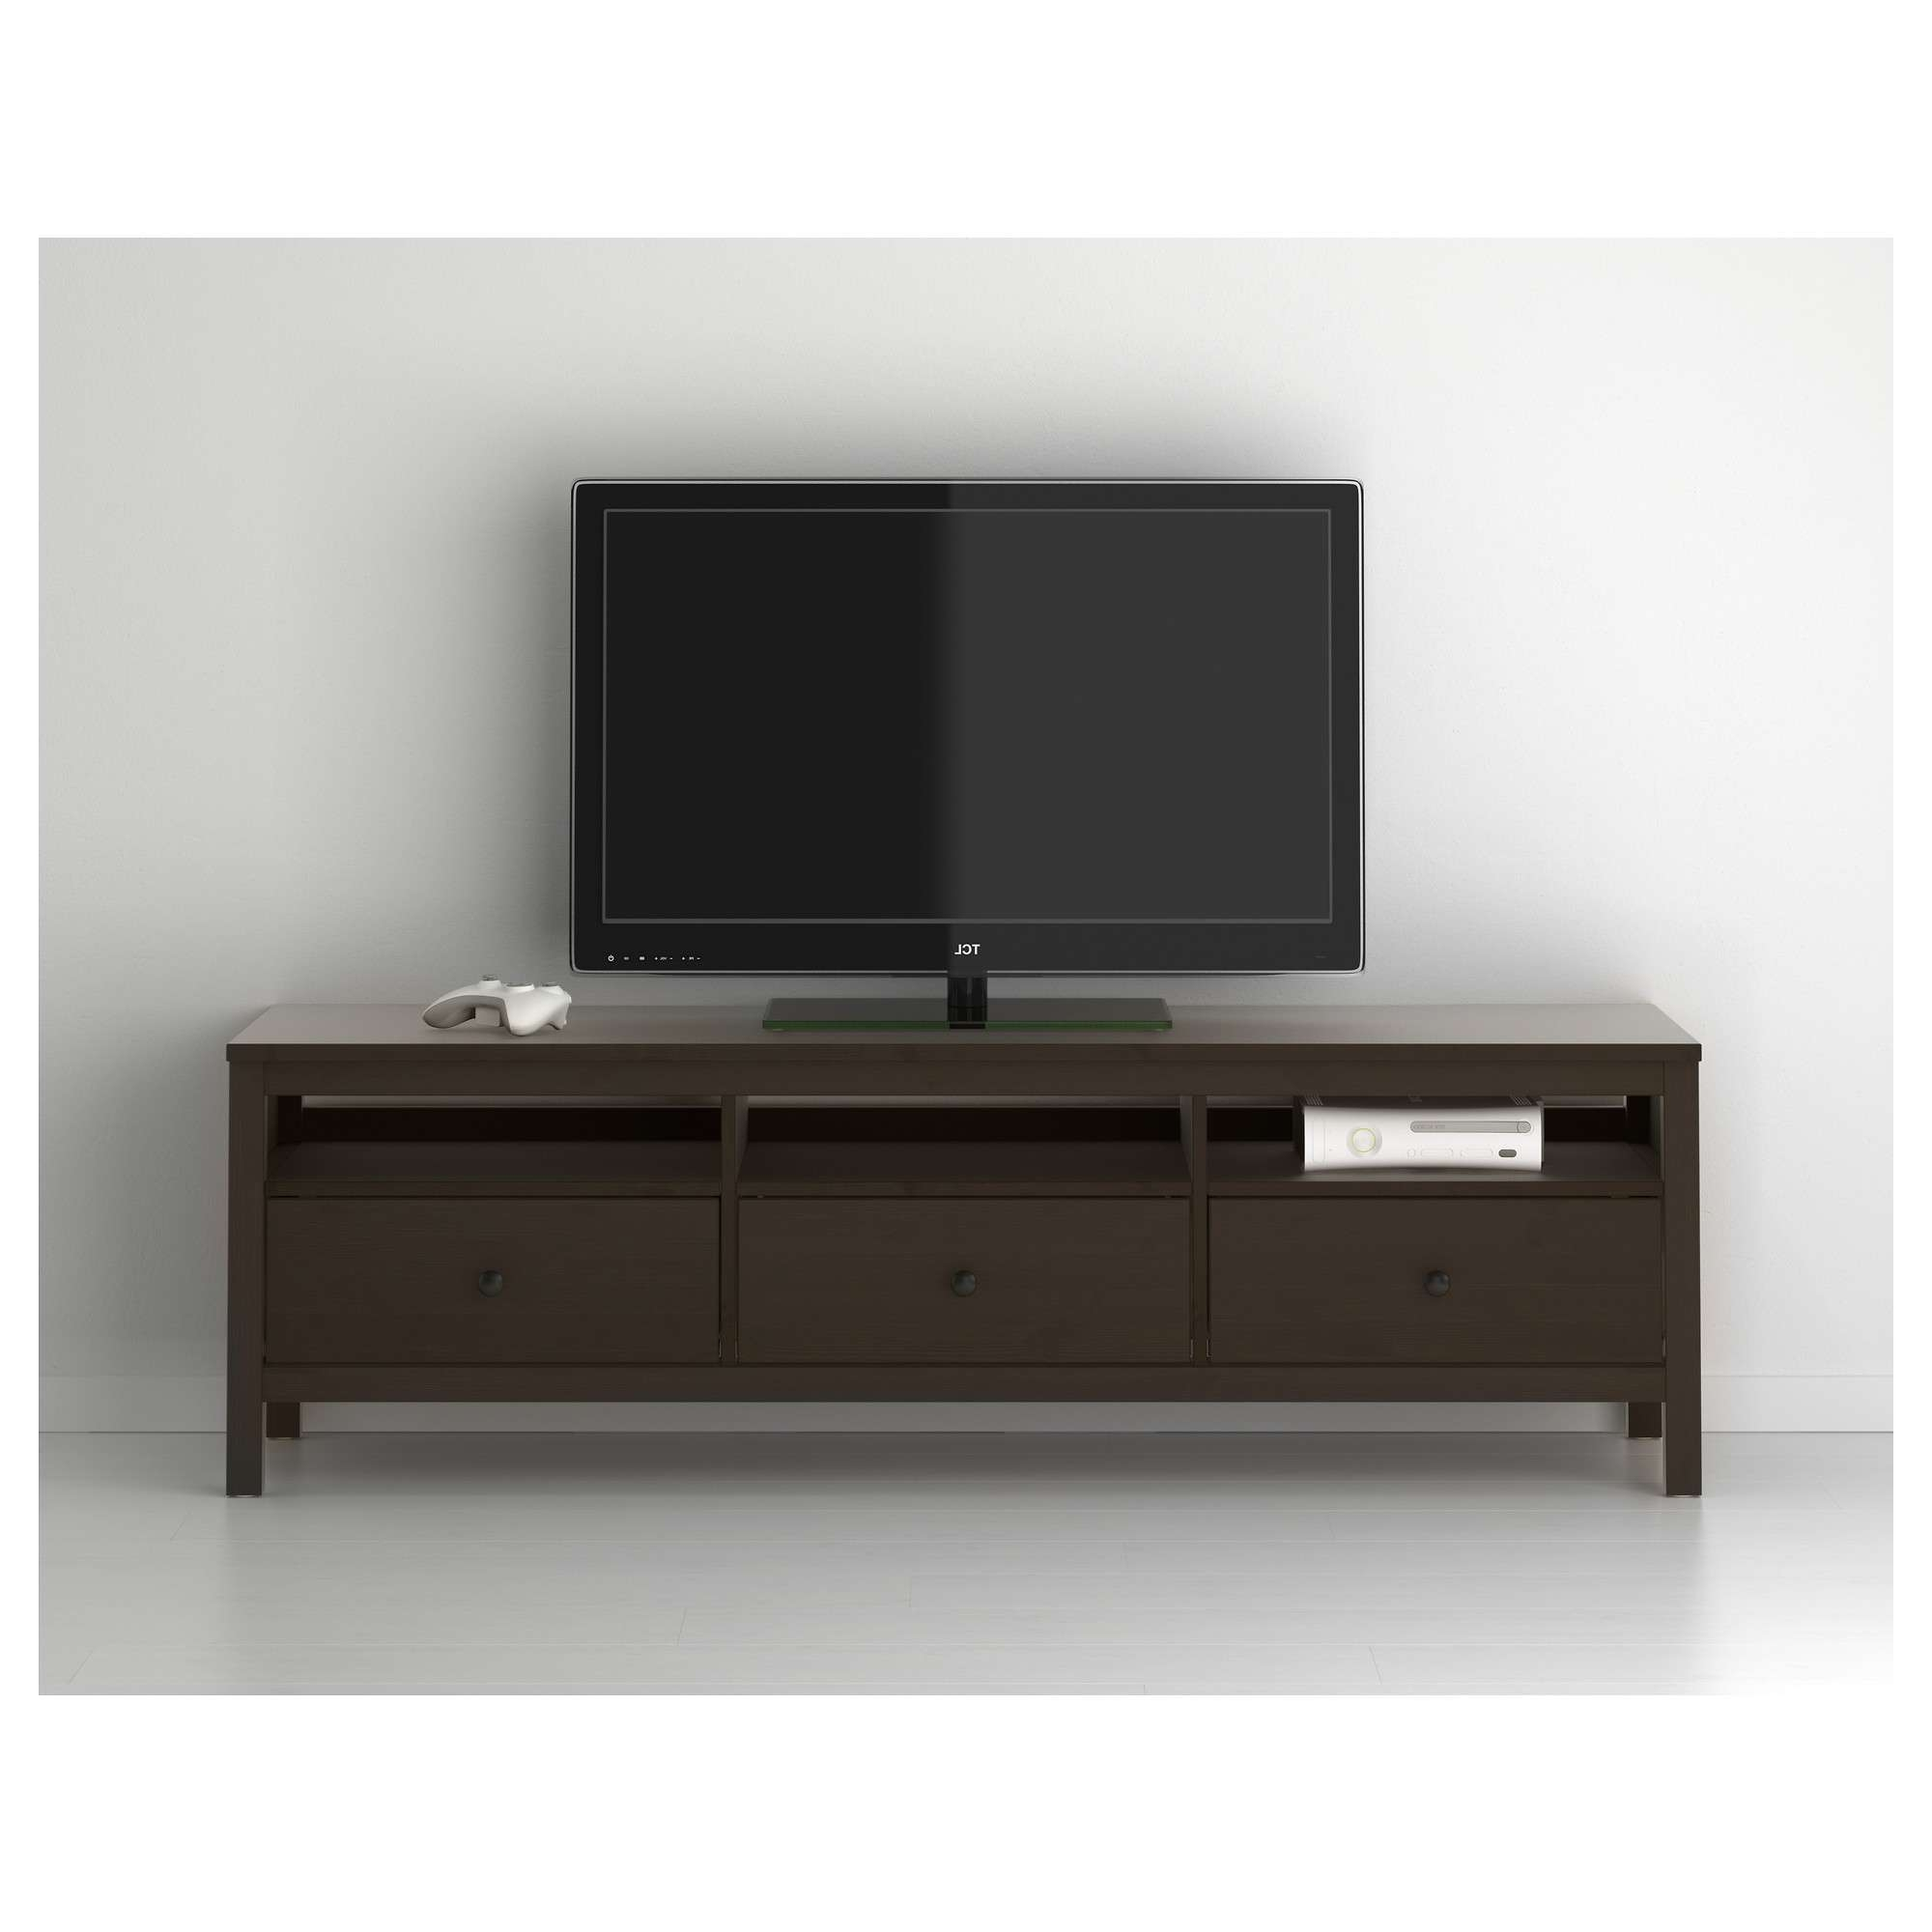 2018 latest tv stands at ikea. Black Bedroom Furniture Sets. Home Design Ideas